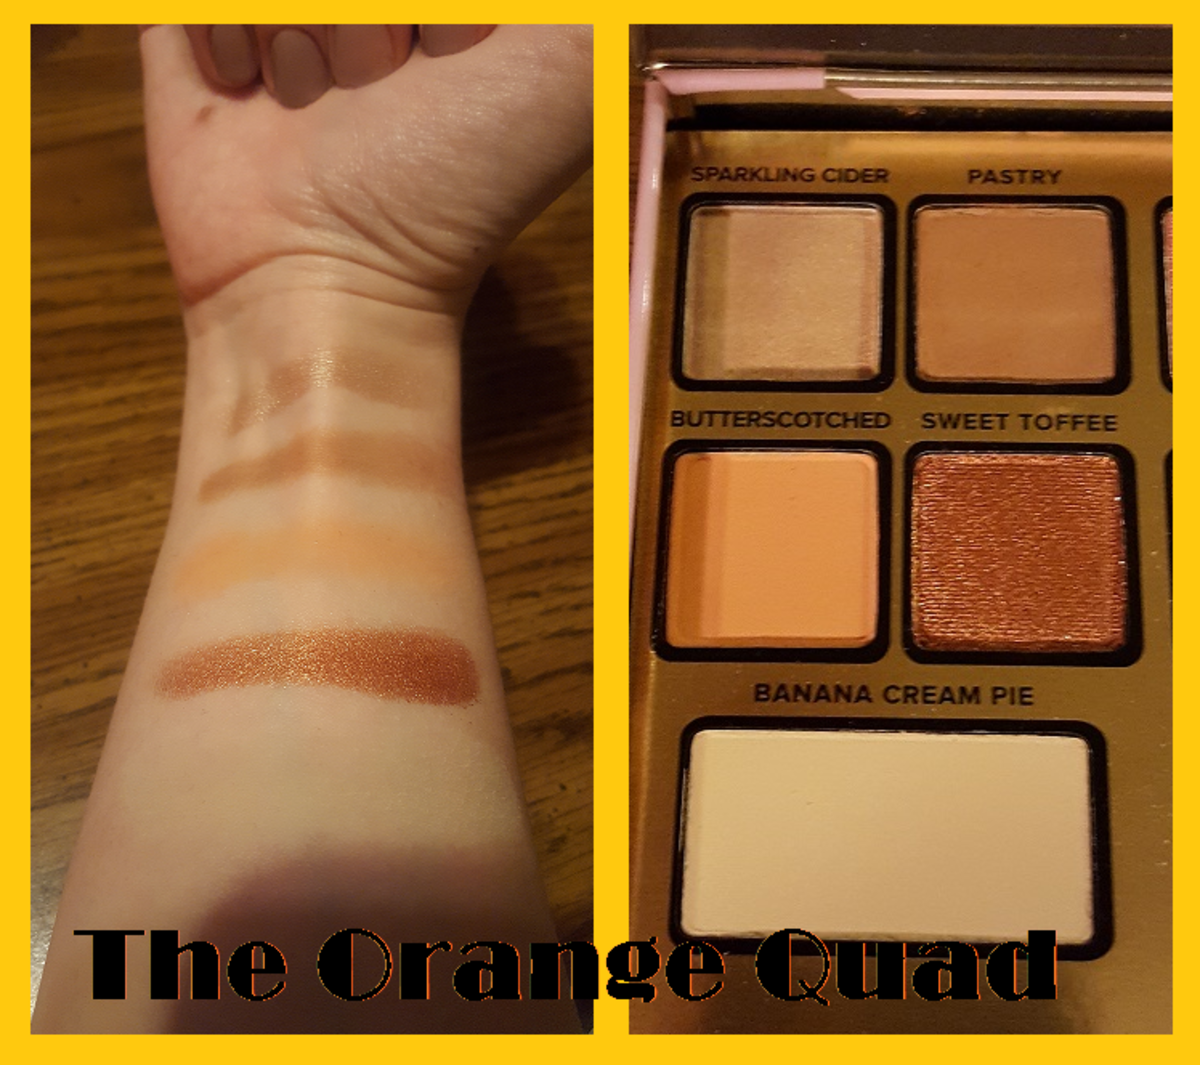 Finger swatches for the orange quad and the highlight below it. From top to bottom: Sparkling Cider, Pastry, Butterscotched, Sweet Toffee, and Banana Cream Pie (which is hard to see on my skin tone).